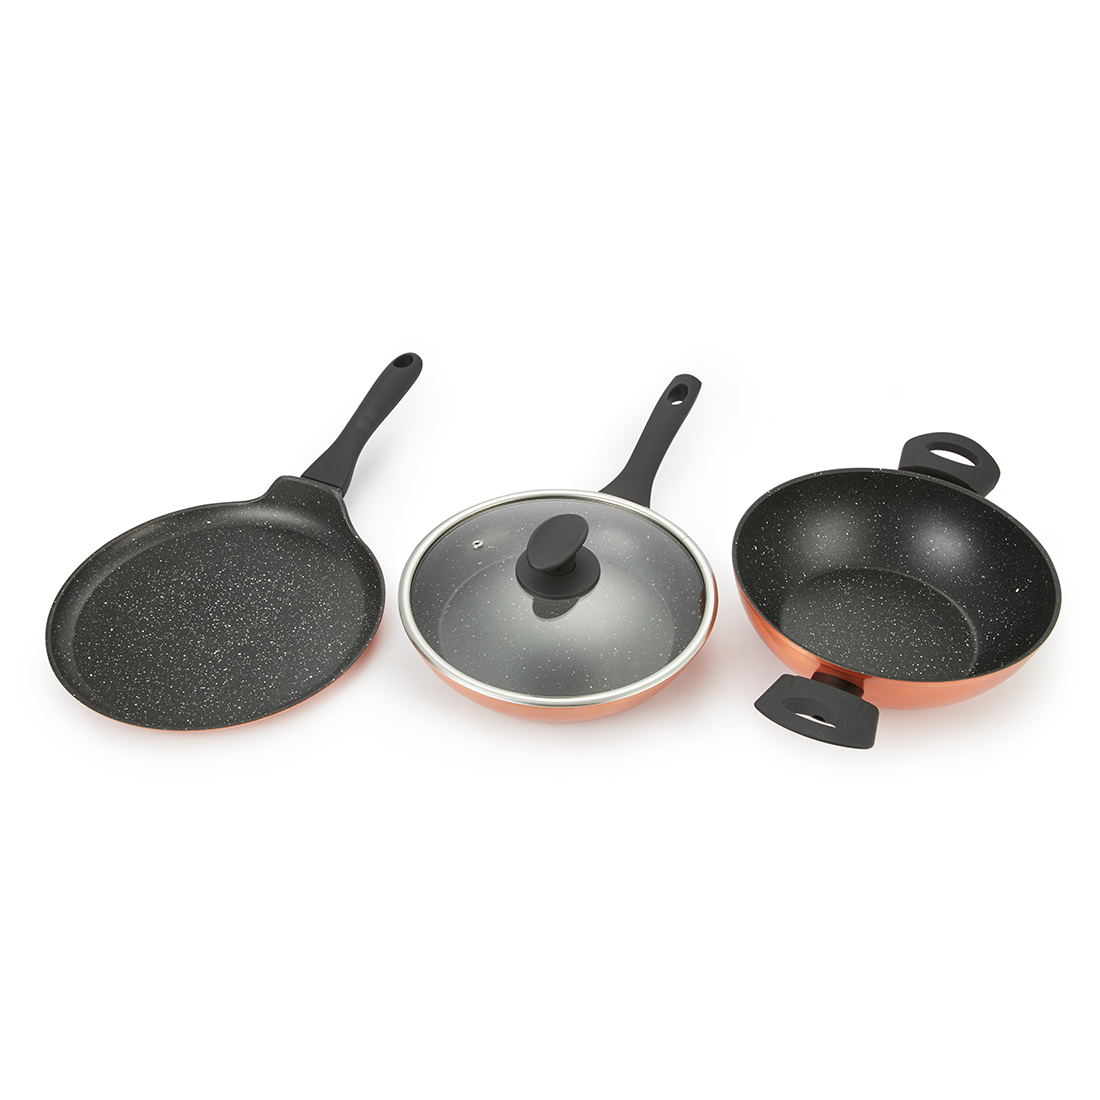 Bergner Forged Cookware Set 4 Copper Cookware Sets in Copper Finish Colour by Living Essence